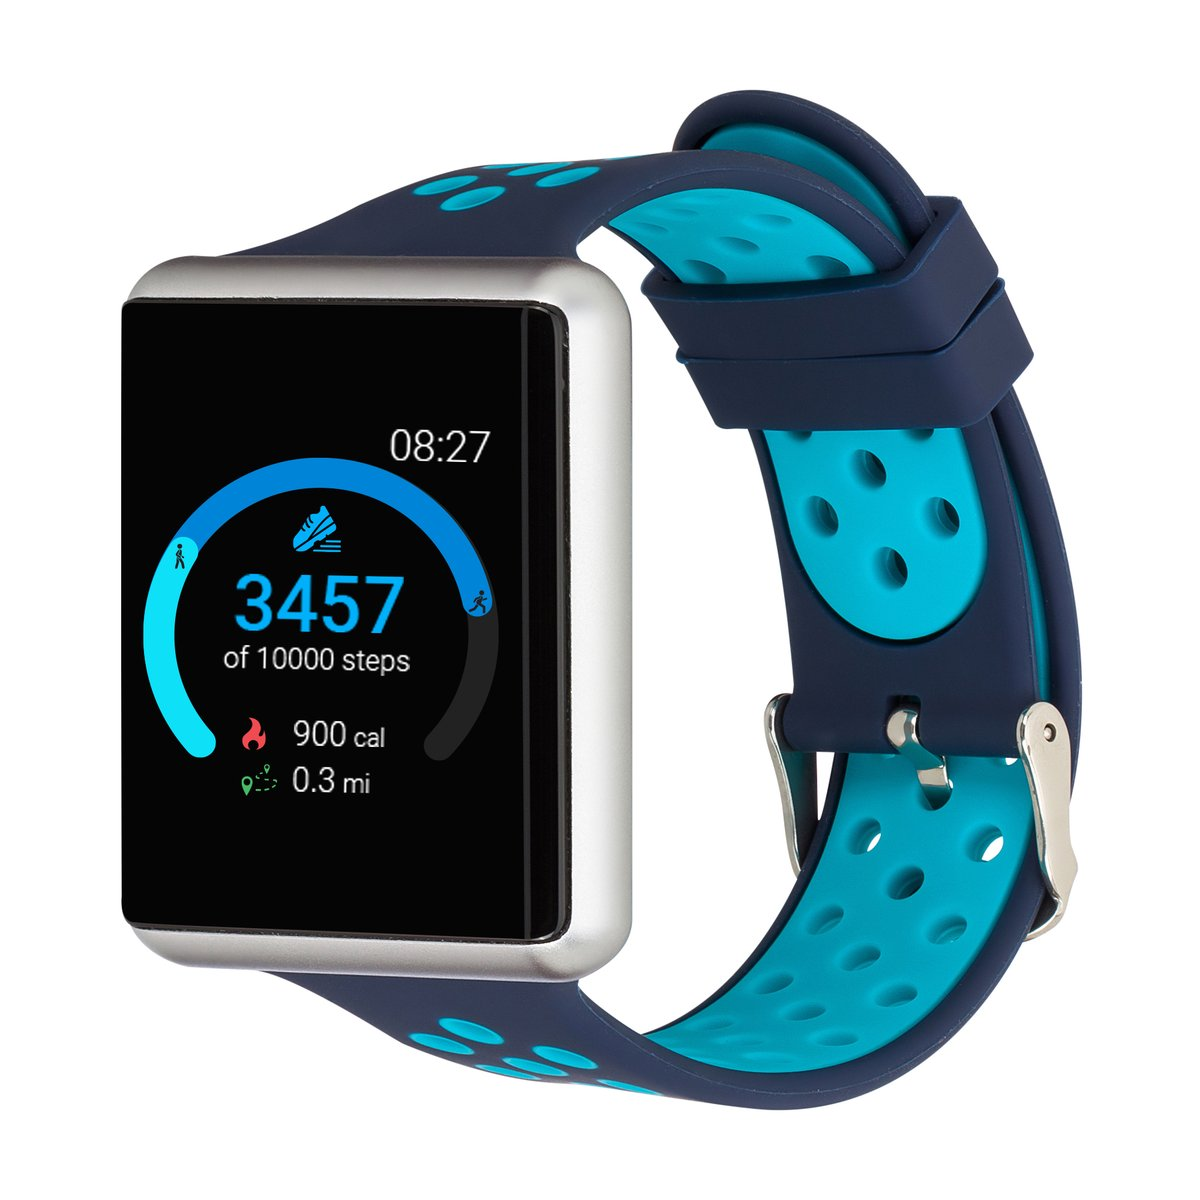 iTouch Air SE Smartwatch: Silver Case With Navy/Turquoise ...